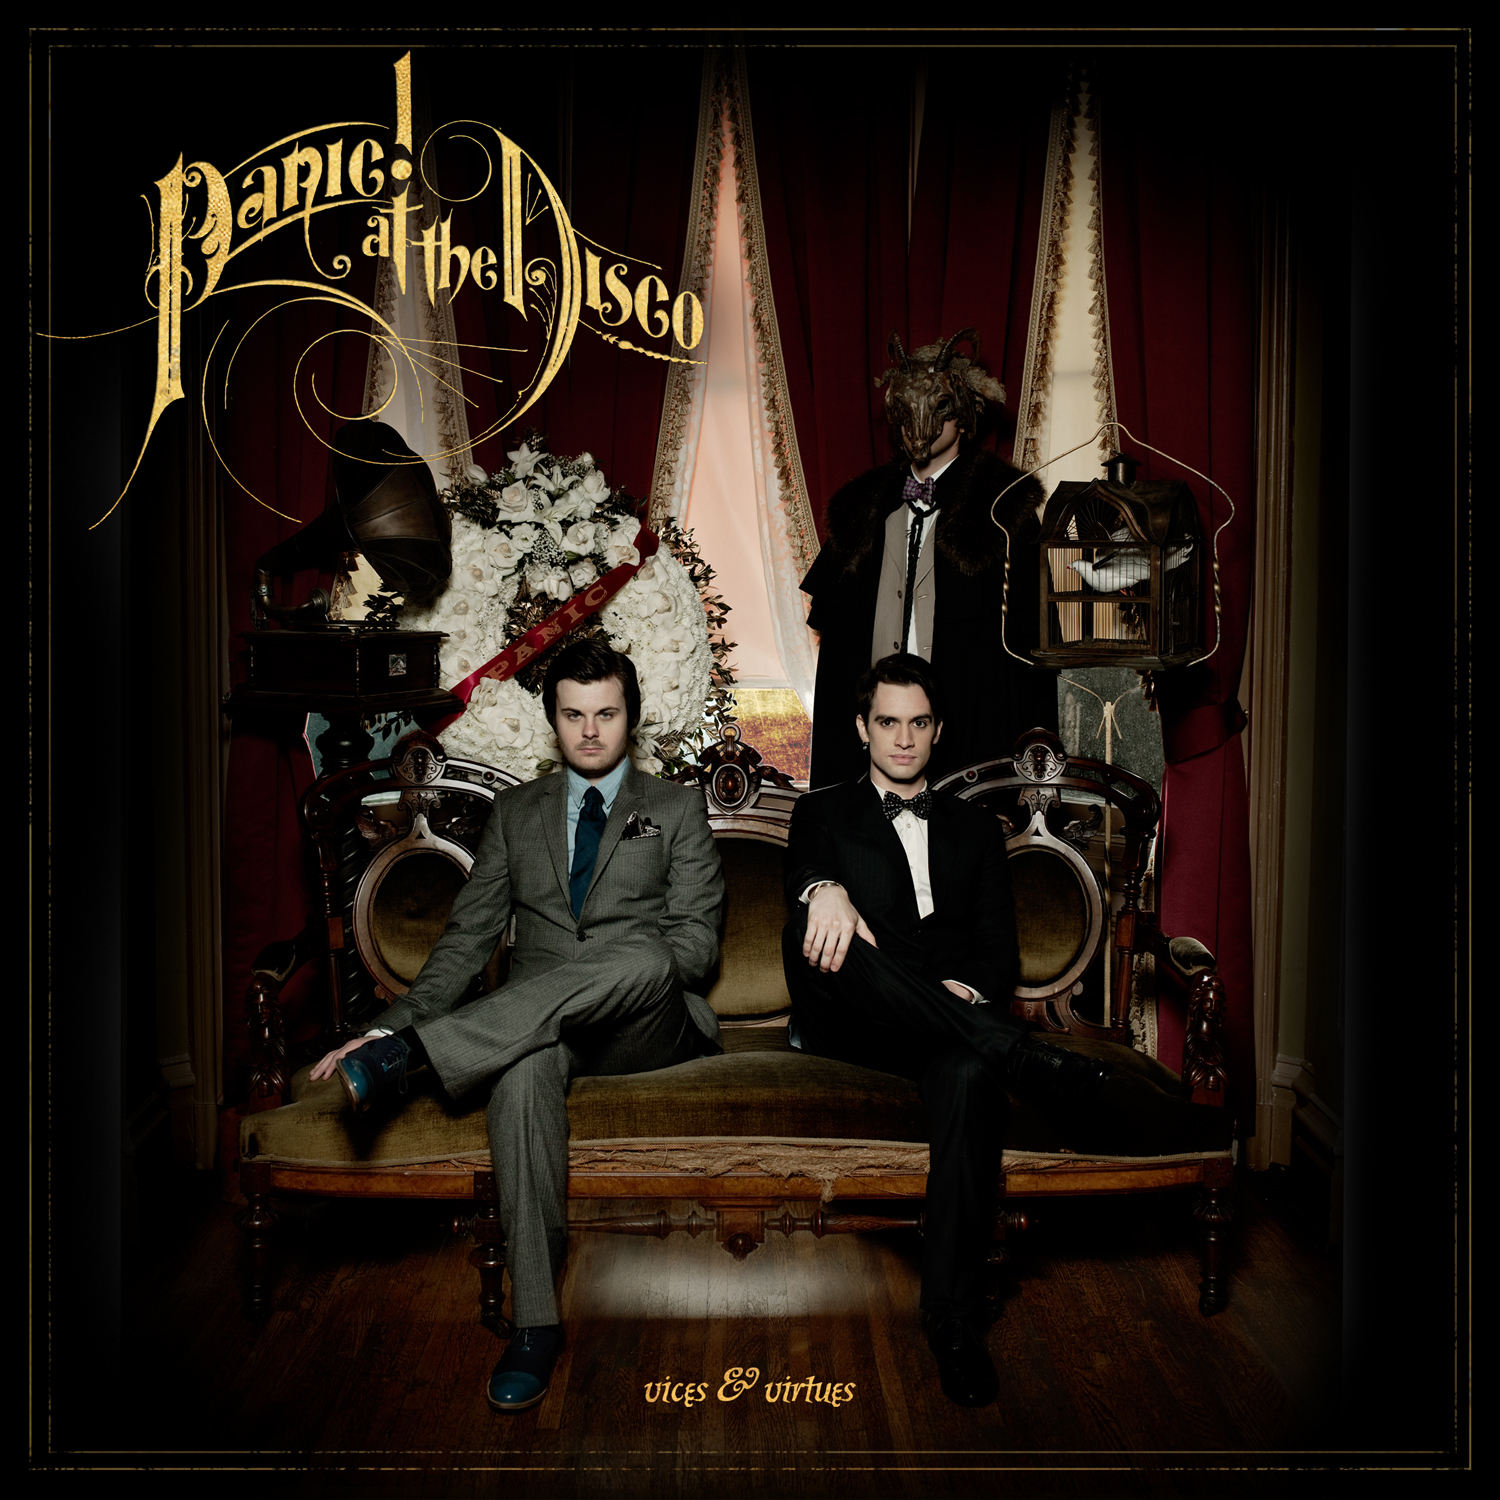 Vices & Virtues - Wikipedia